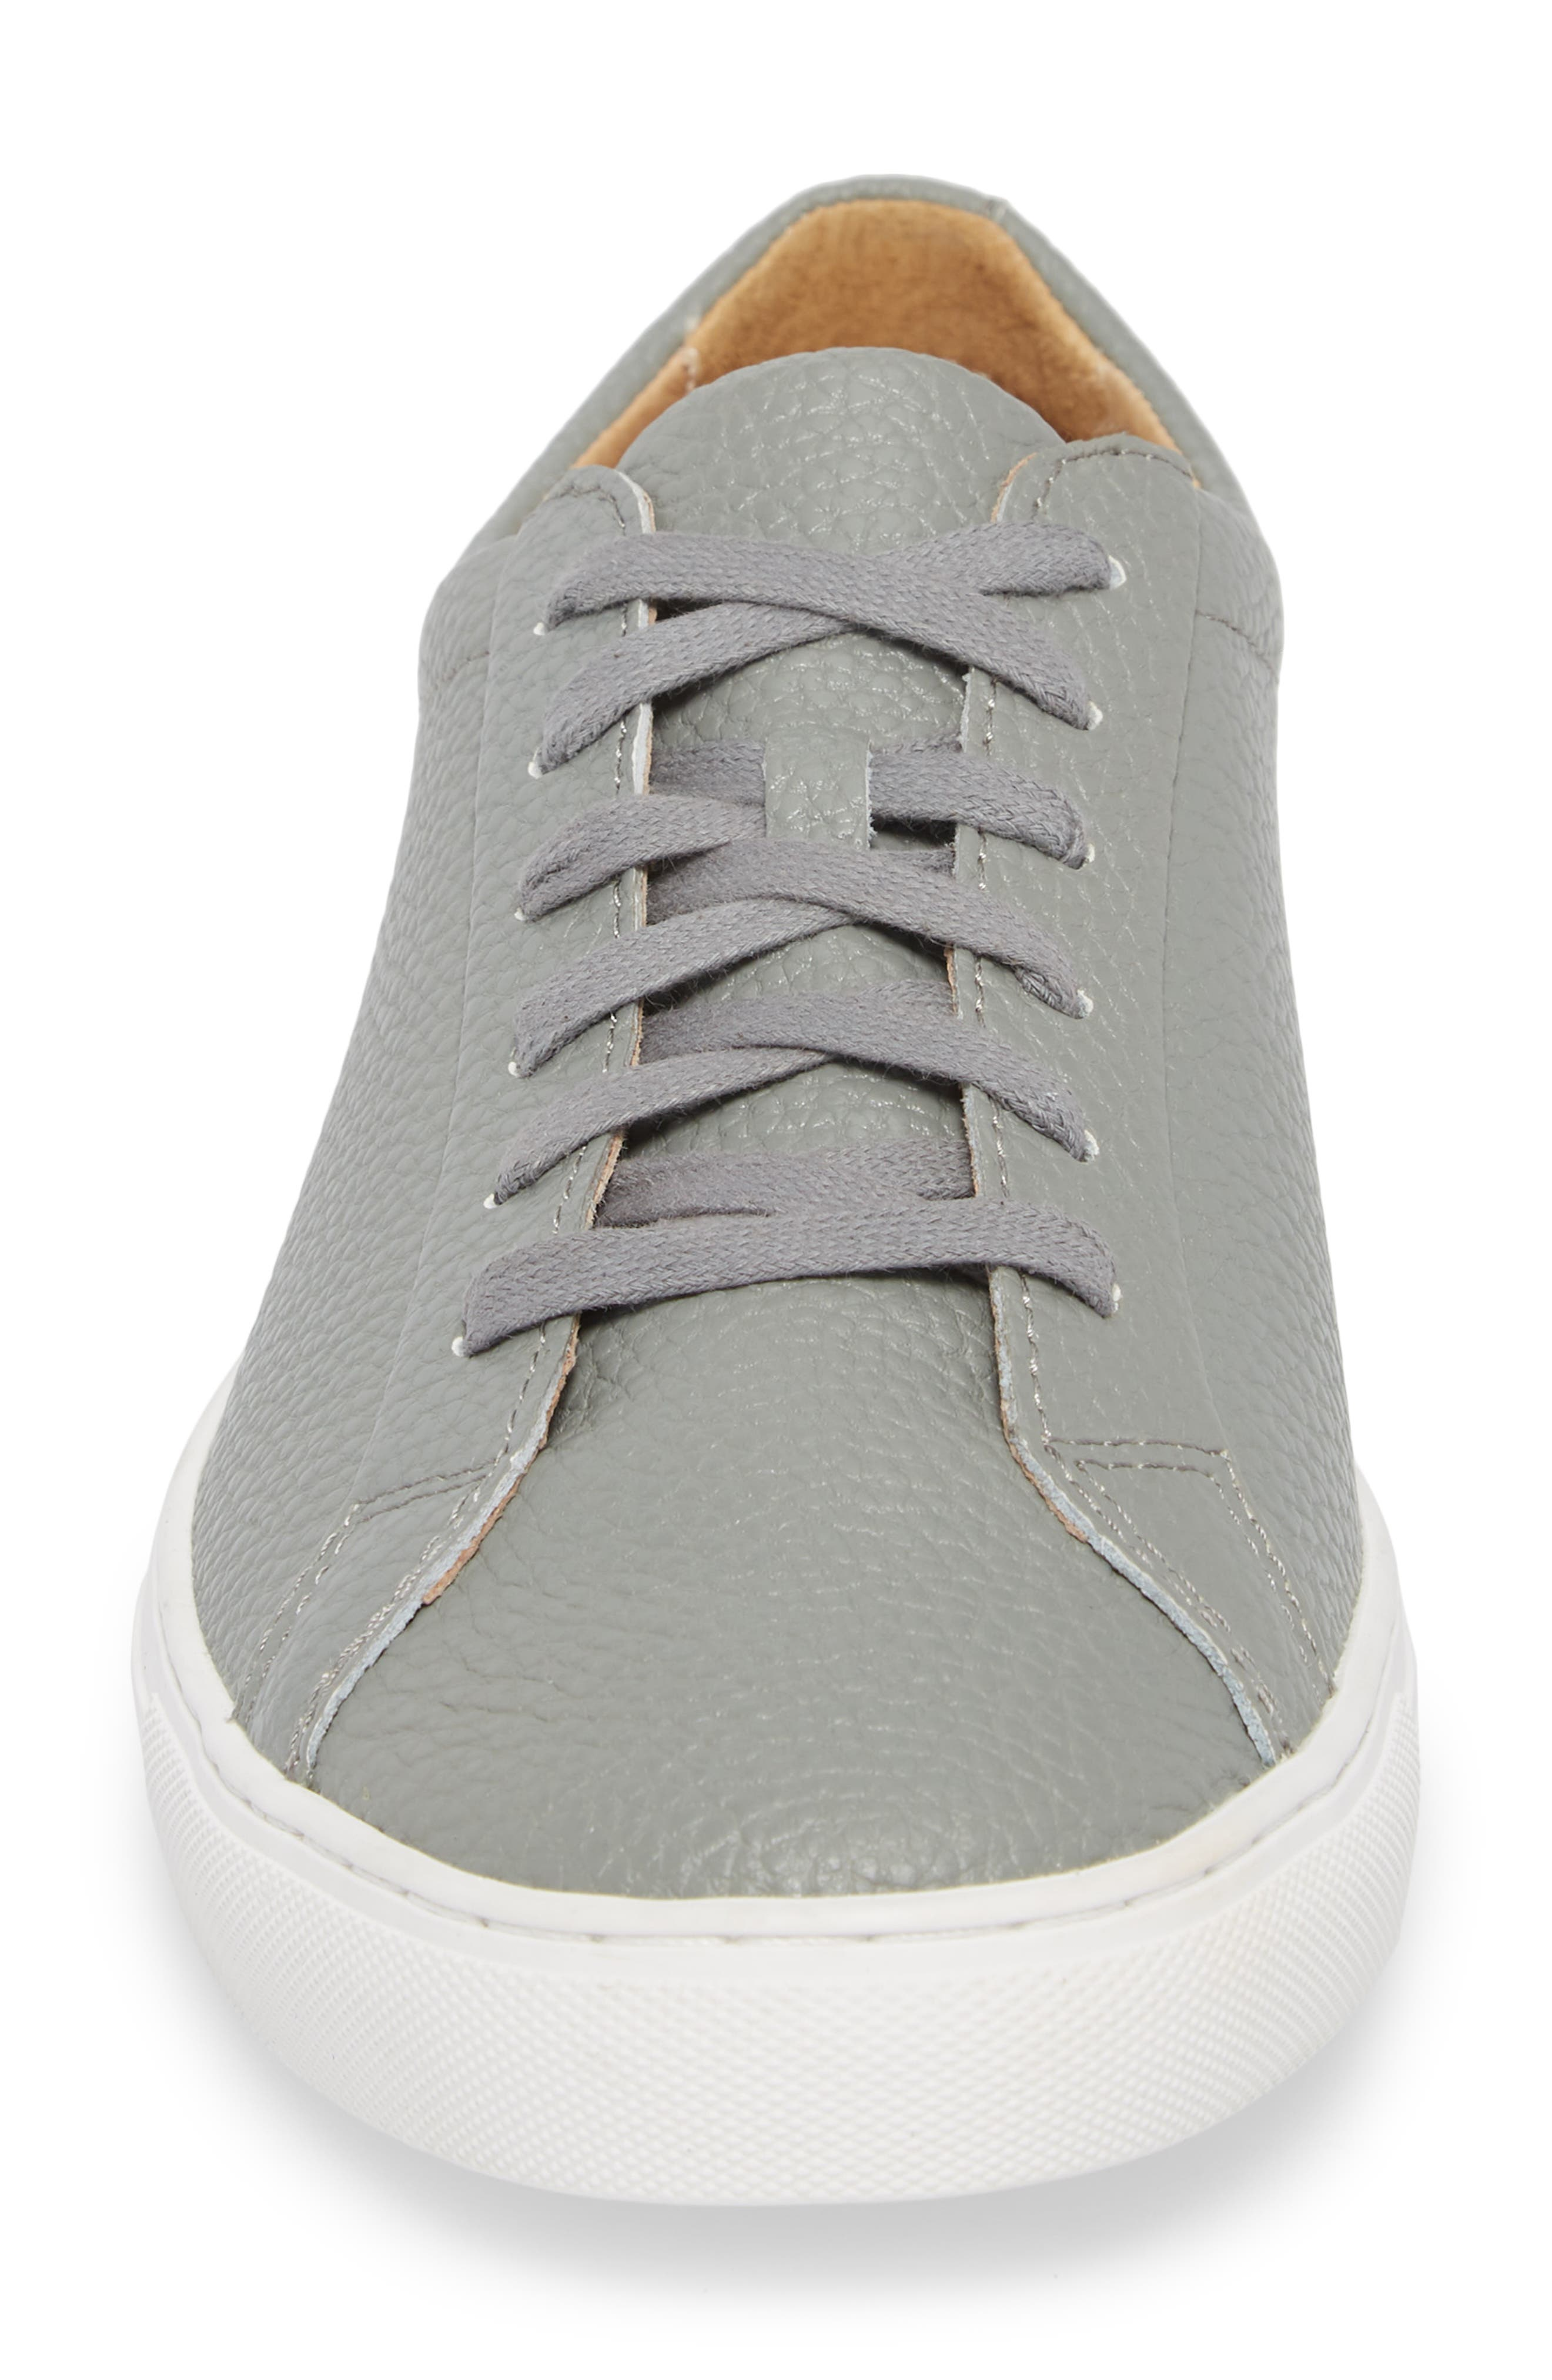 Kennedy Low Top Sneaker,                             Alternate thumbnail 4, color,                             RIVER ROCK LEATHER